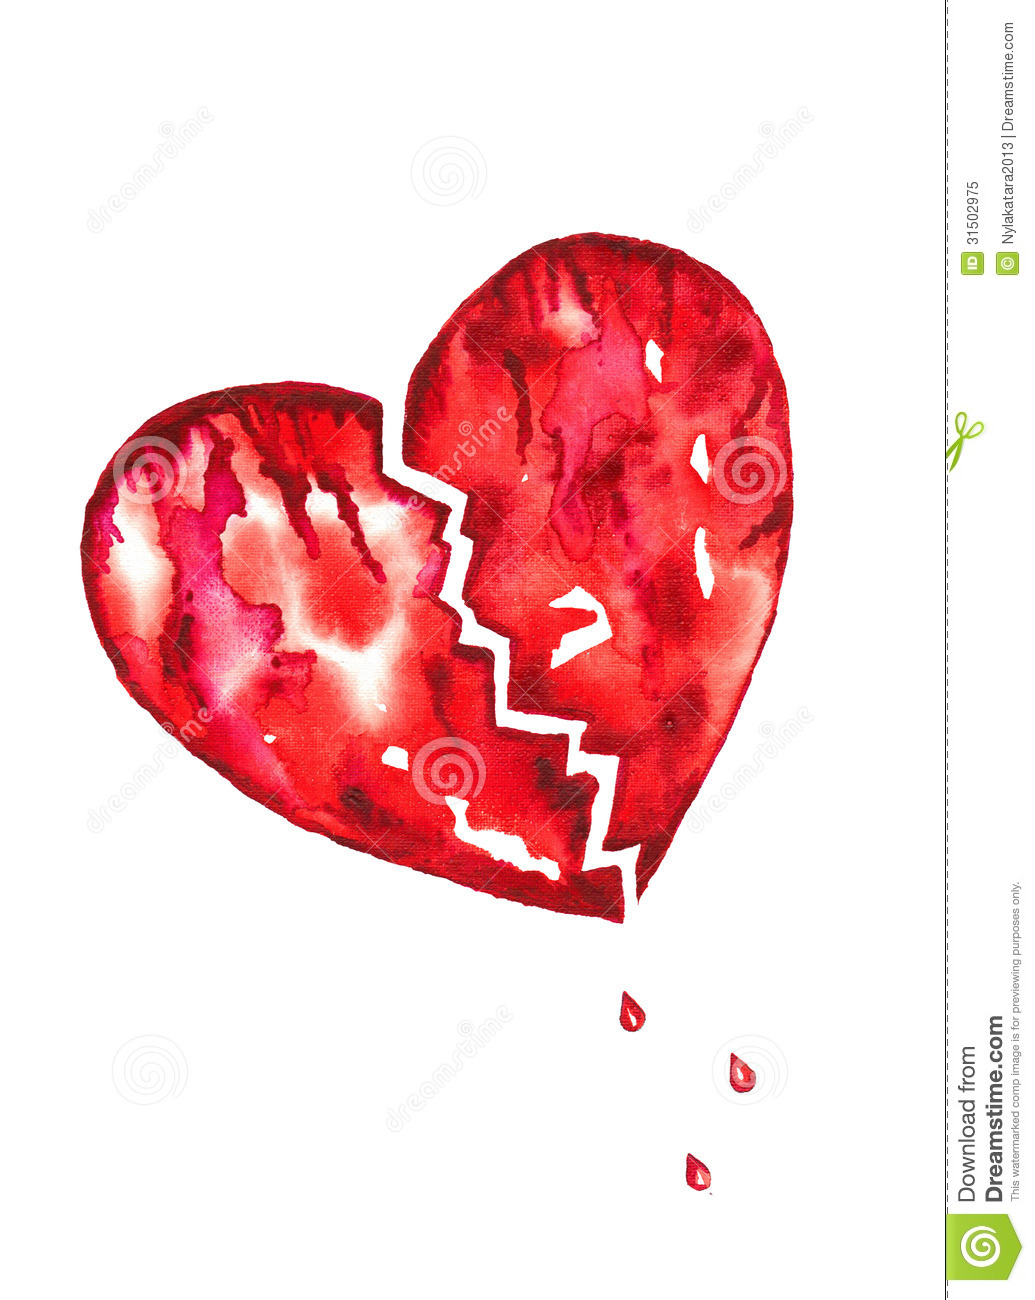 Broken Heart With Blood Droplets Watercolor Stock ...